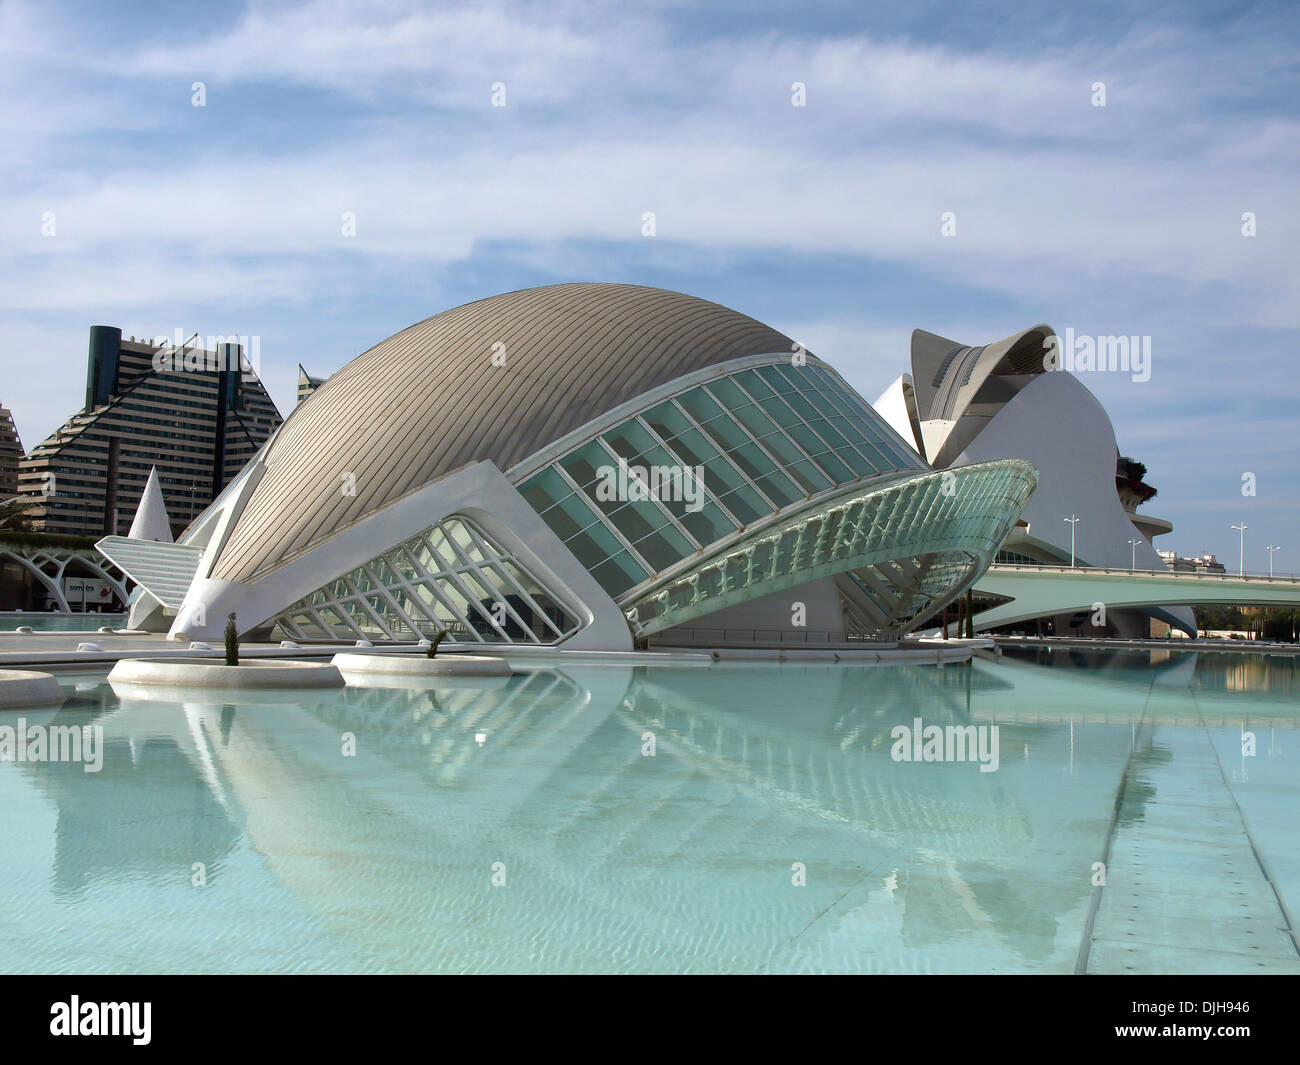 Dome shaped building. Modern european architecture. - Stock Image